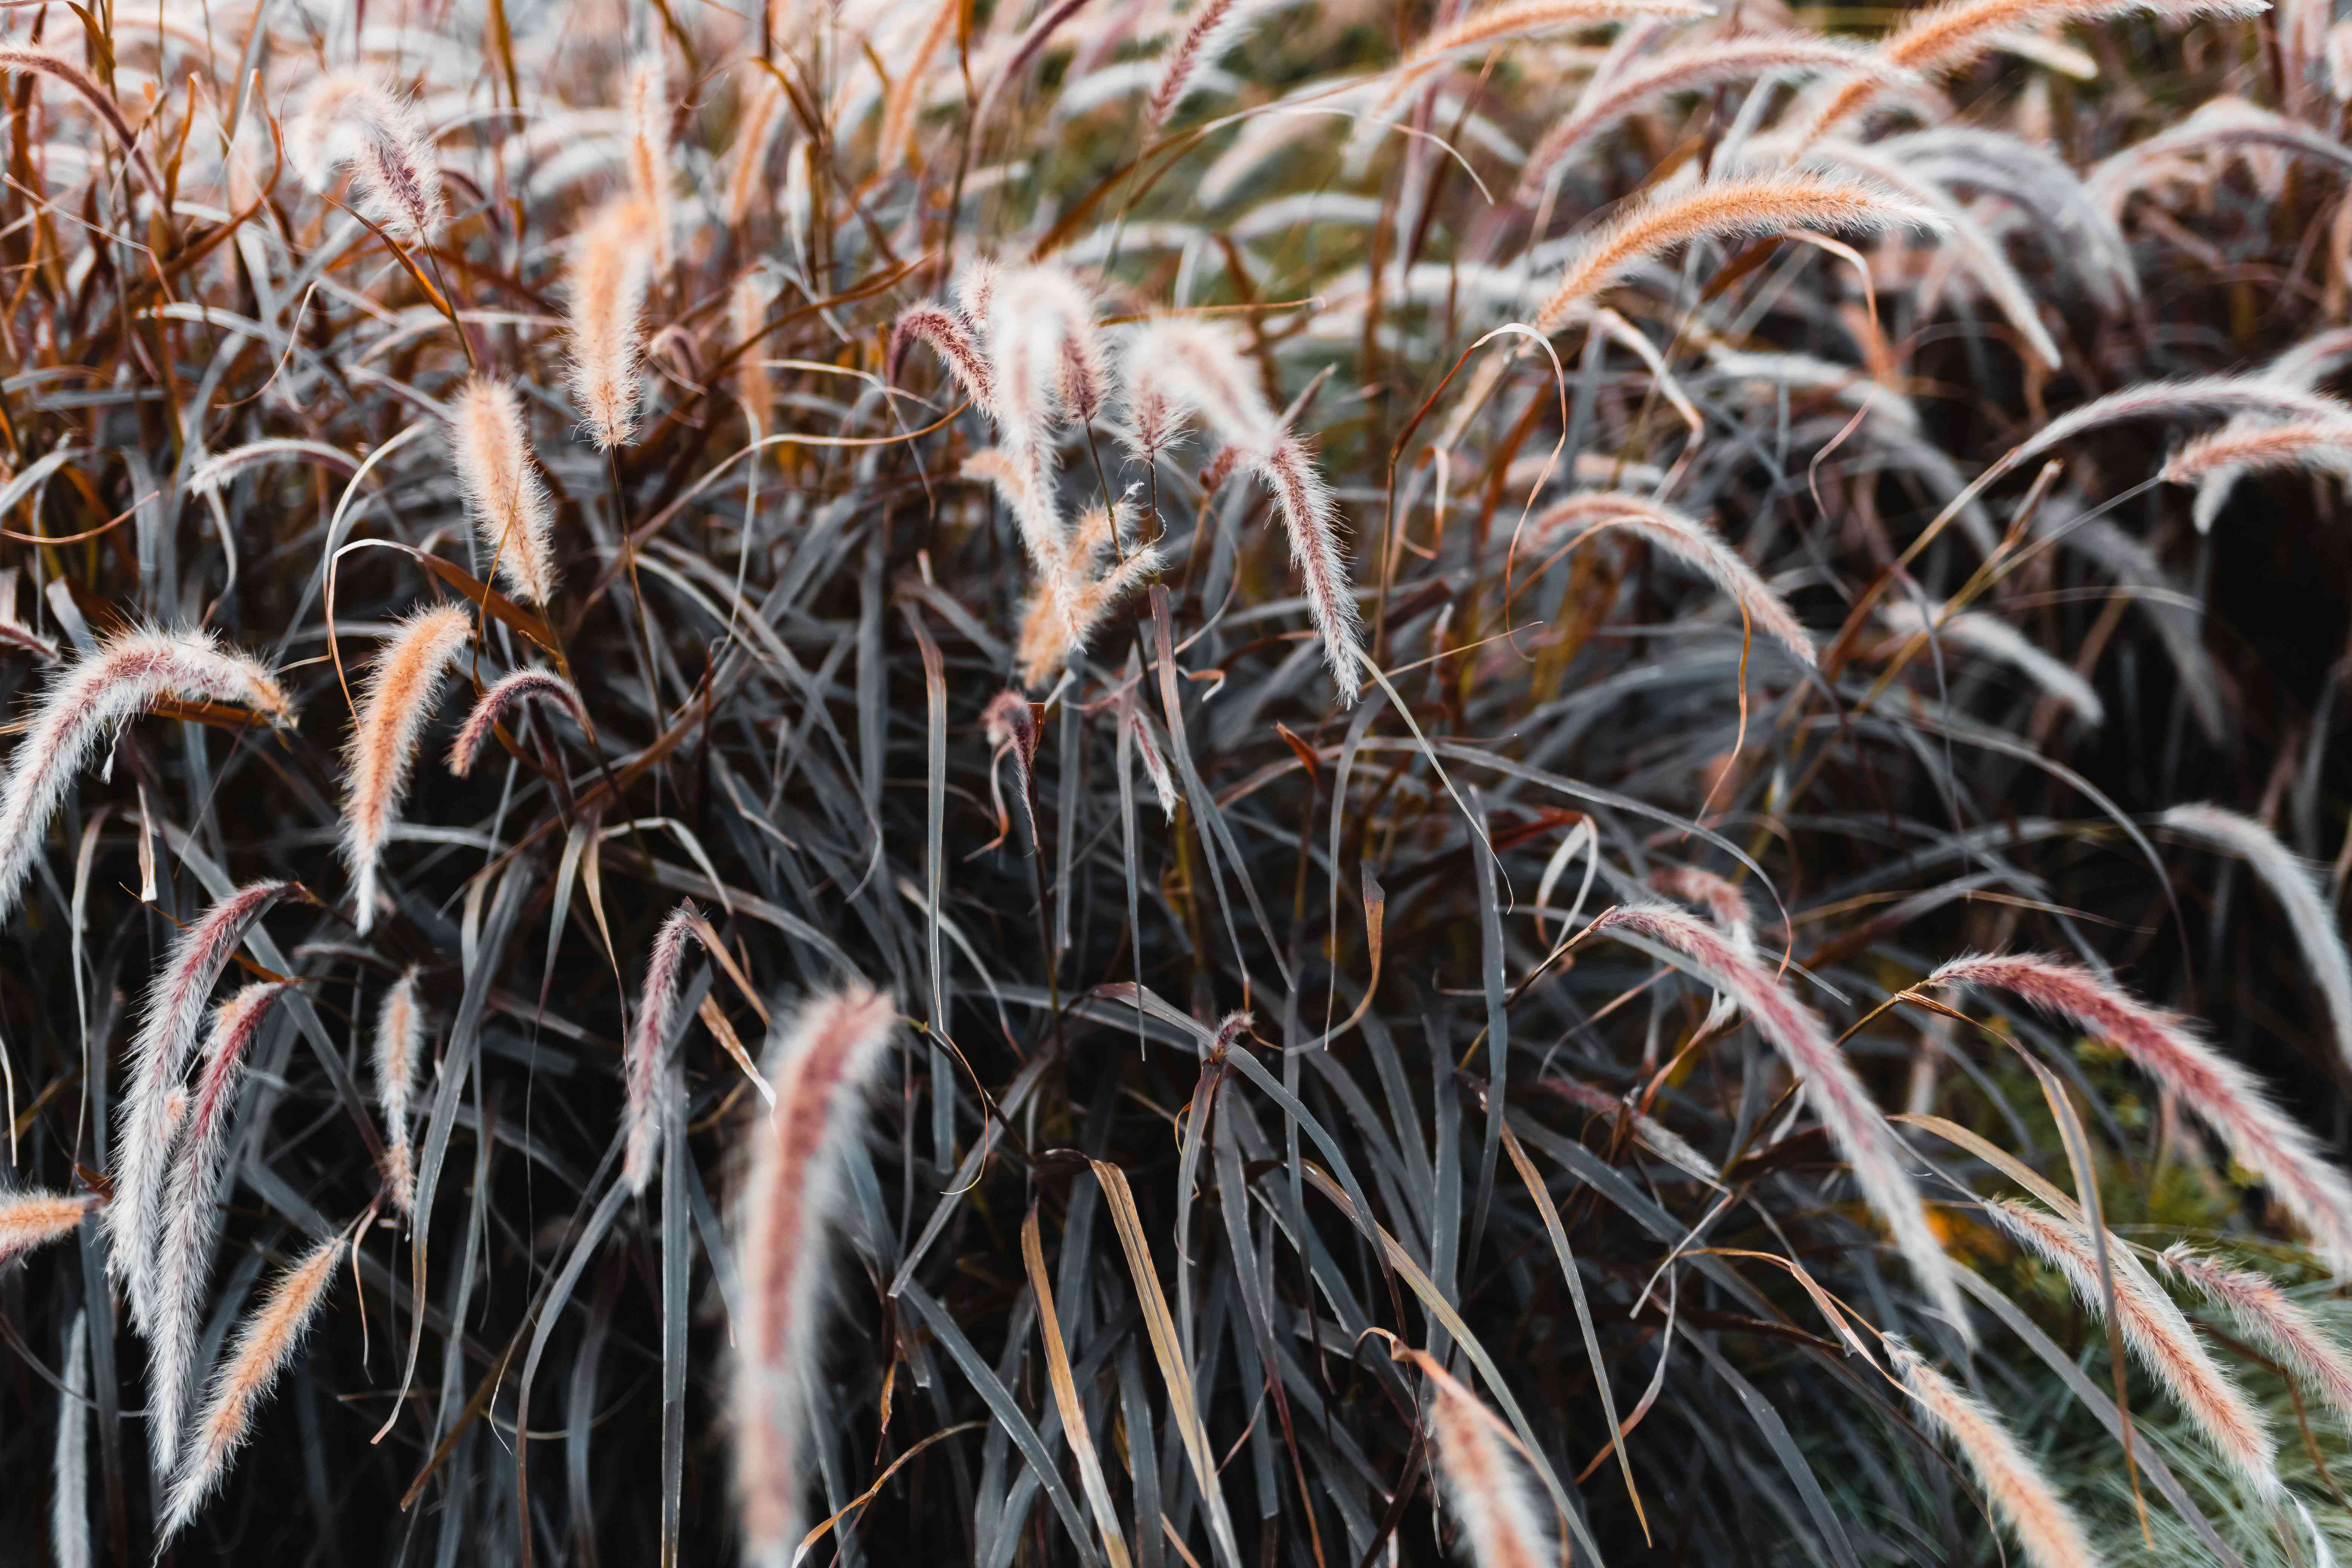 Purple fountain grass with arcing, slender, burgundy-colored leaves with tan fuzzy seed plumes